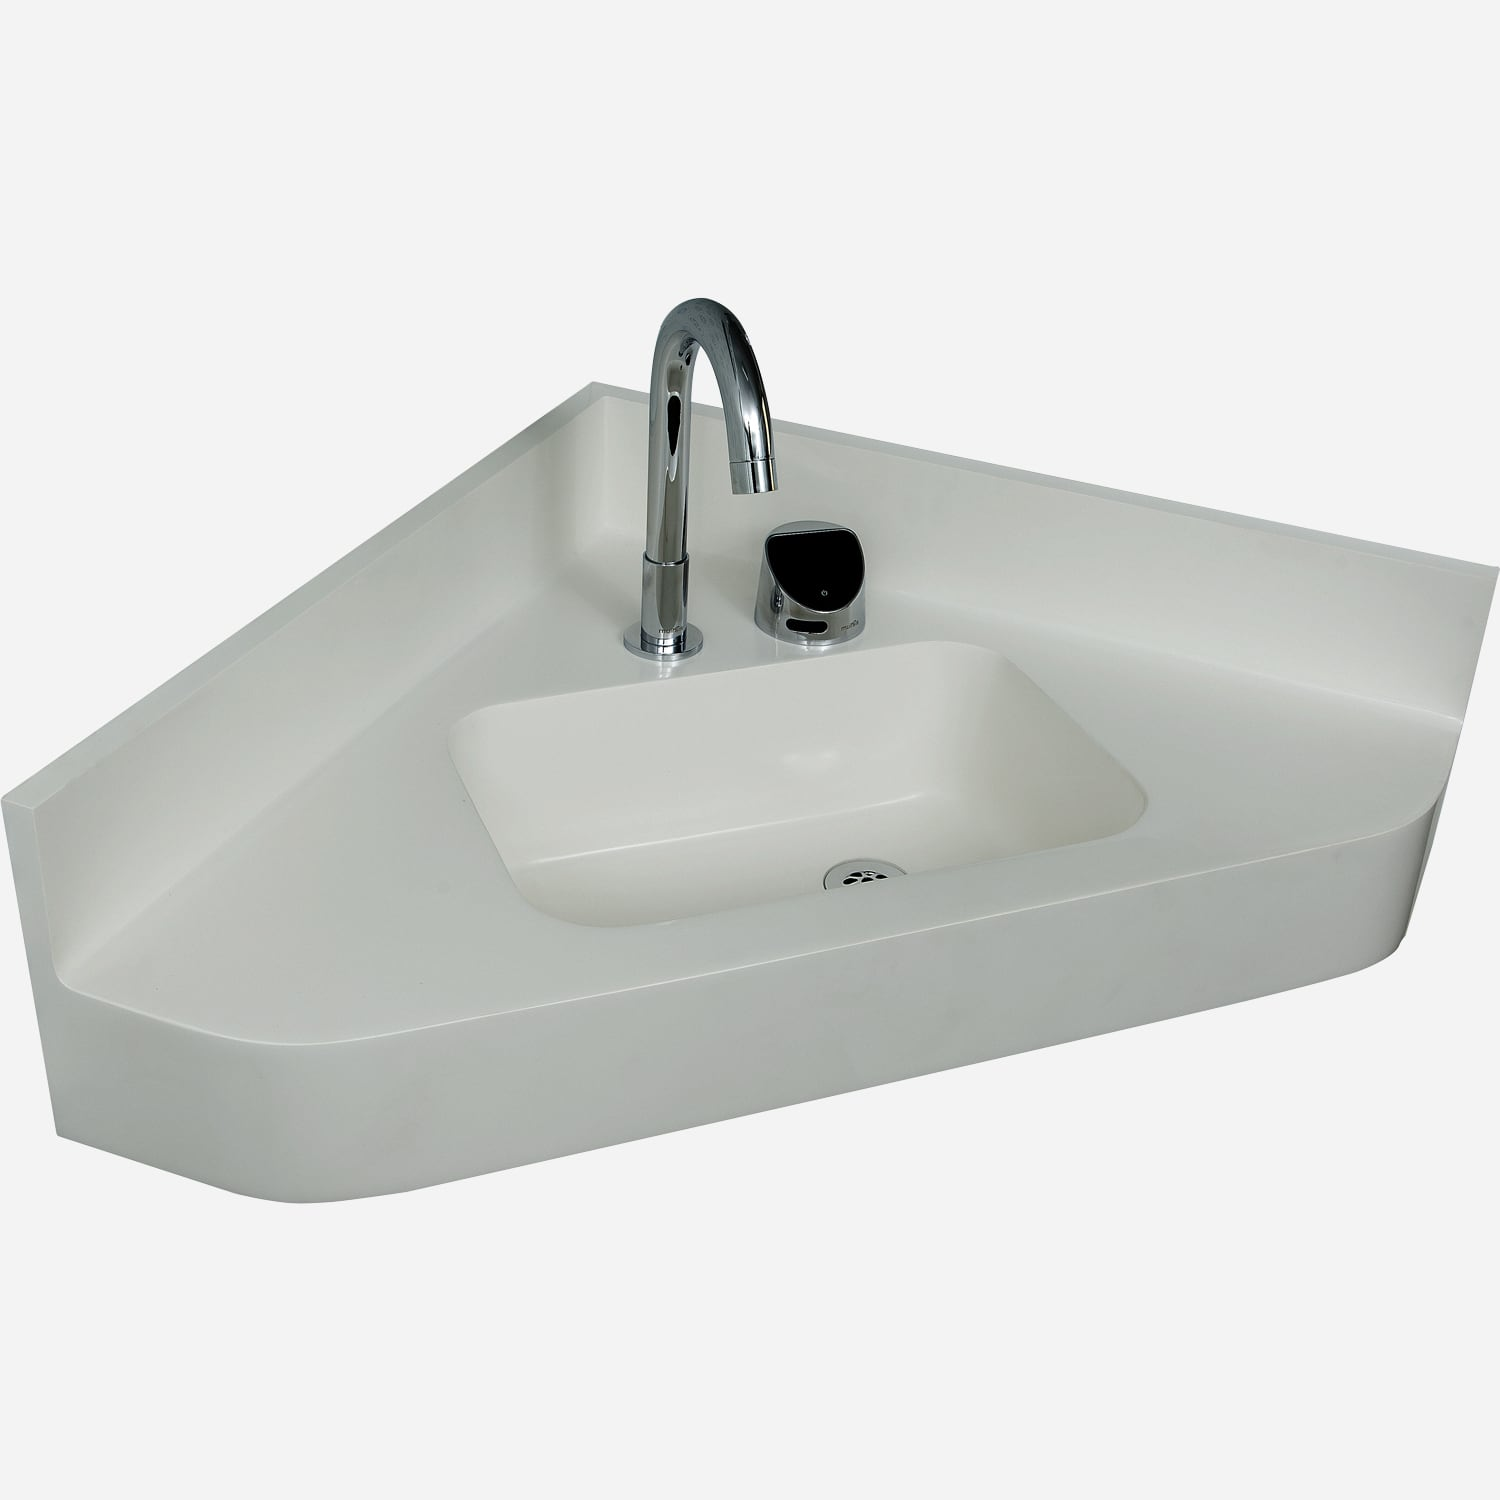 Corterra™ Cast Solid Surface Compact Corner Basin